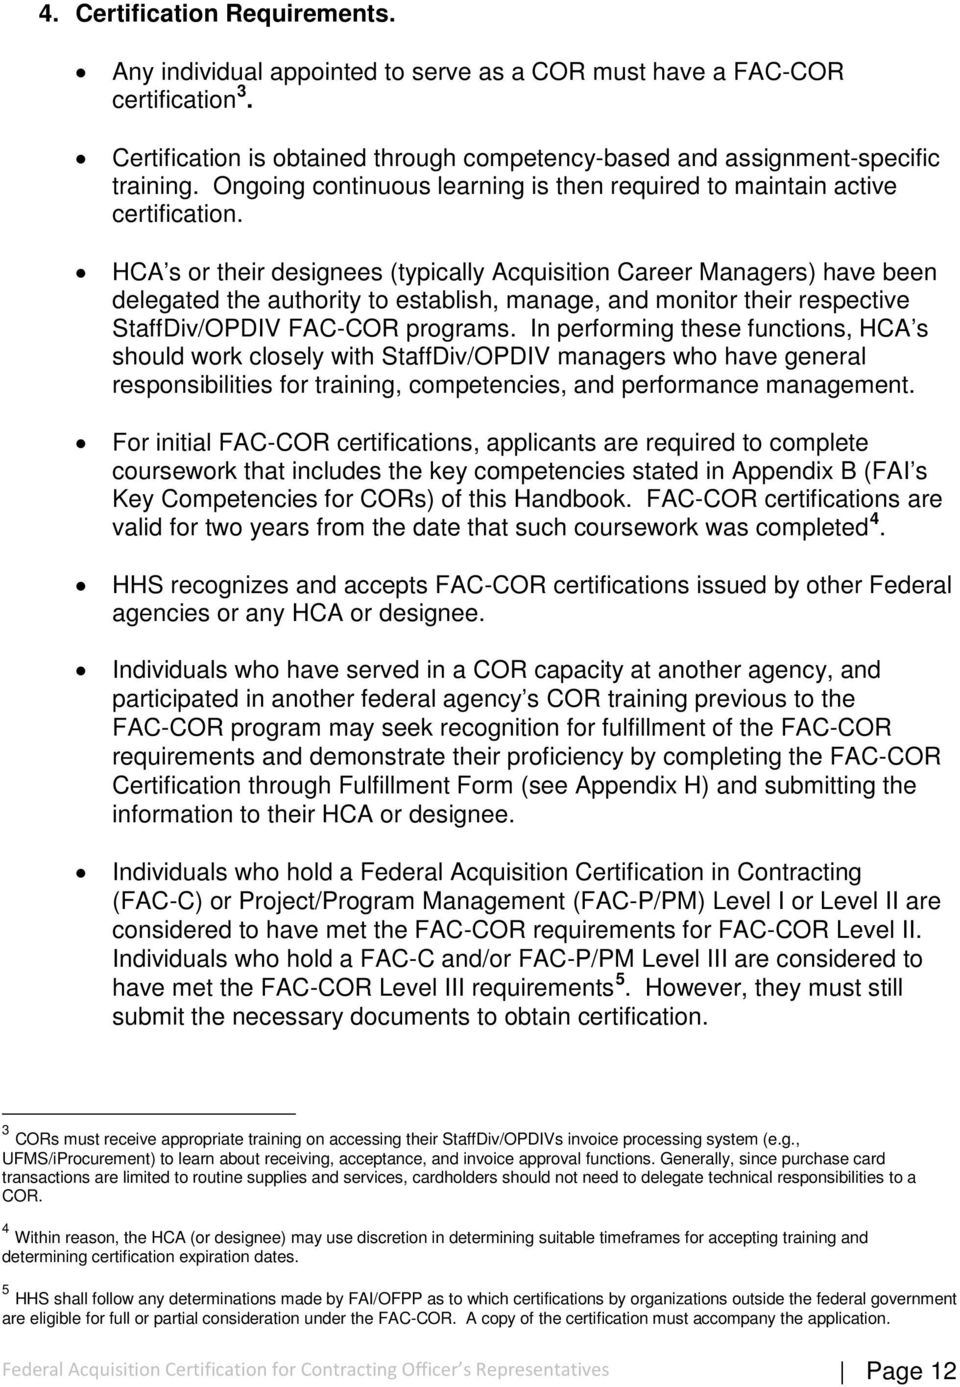 Federal Acquisition Certification For Contracting Officer S